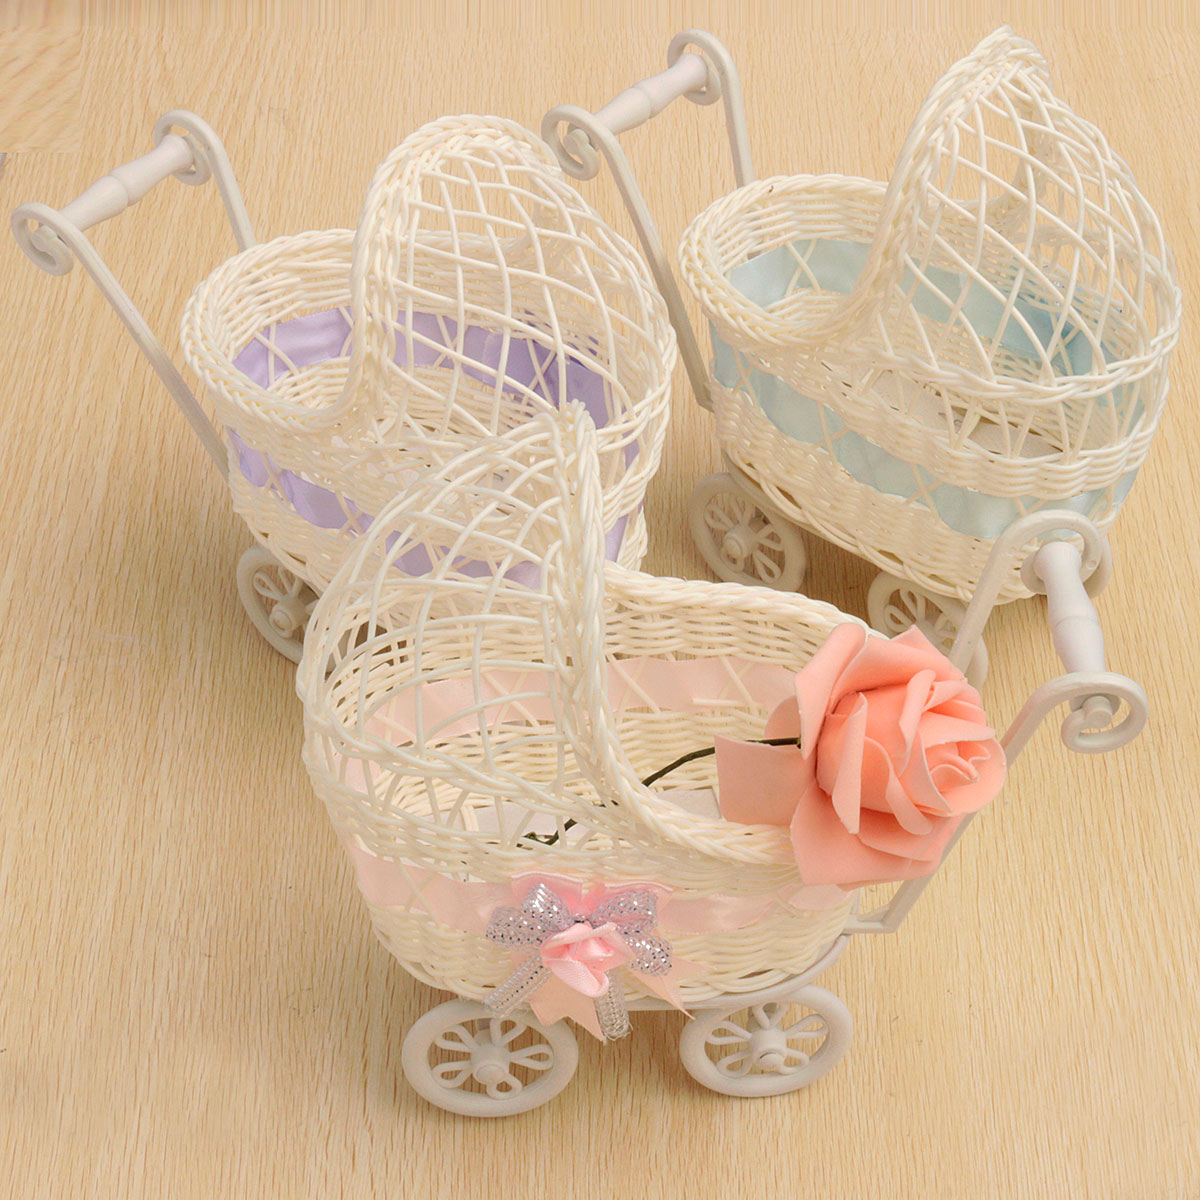 Buy Flower Basket Wicker Pram Baby Shower Party Gift Present Organizer Home Table Decor